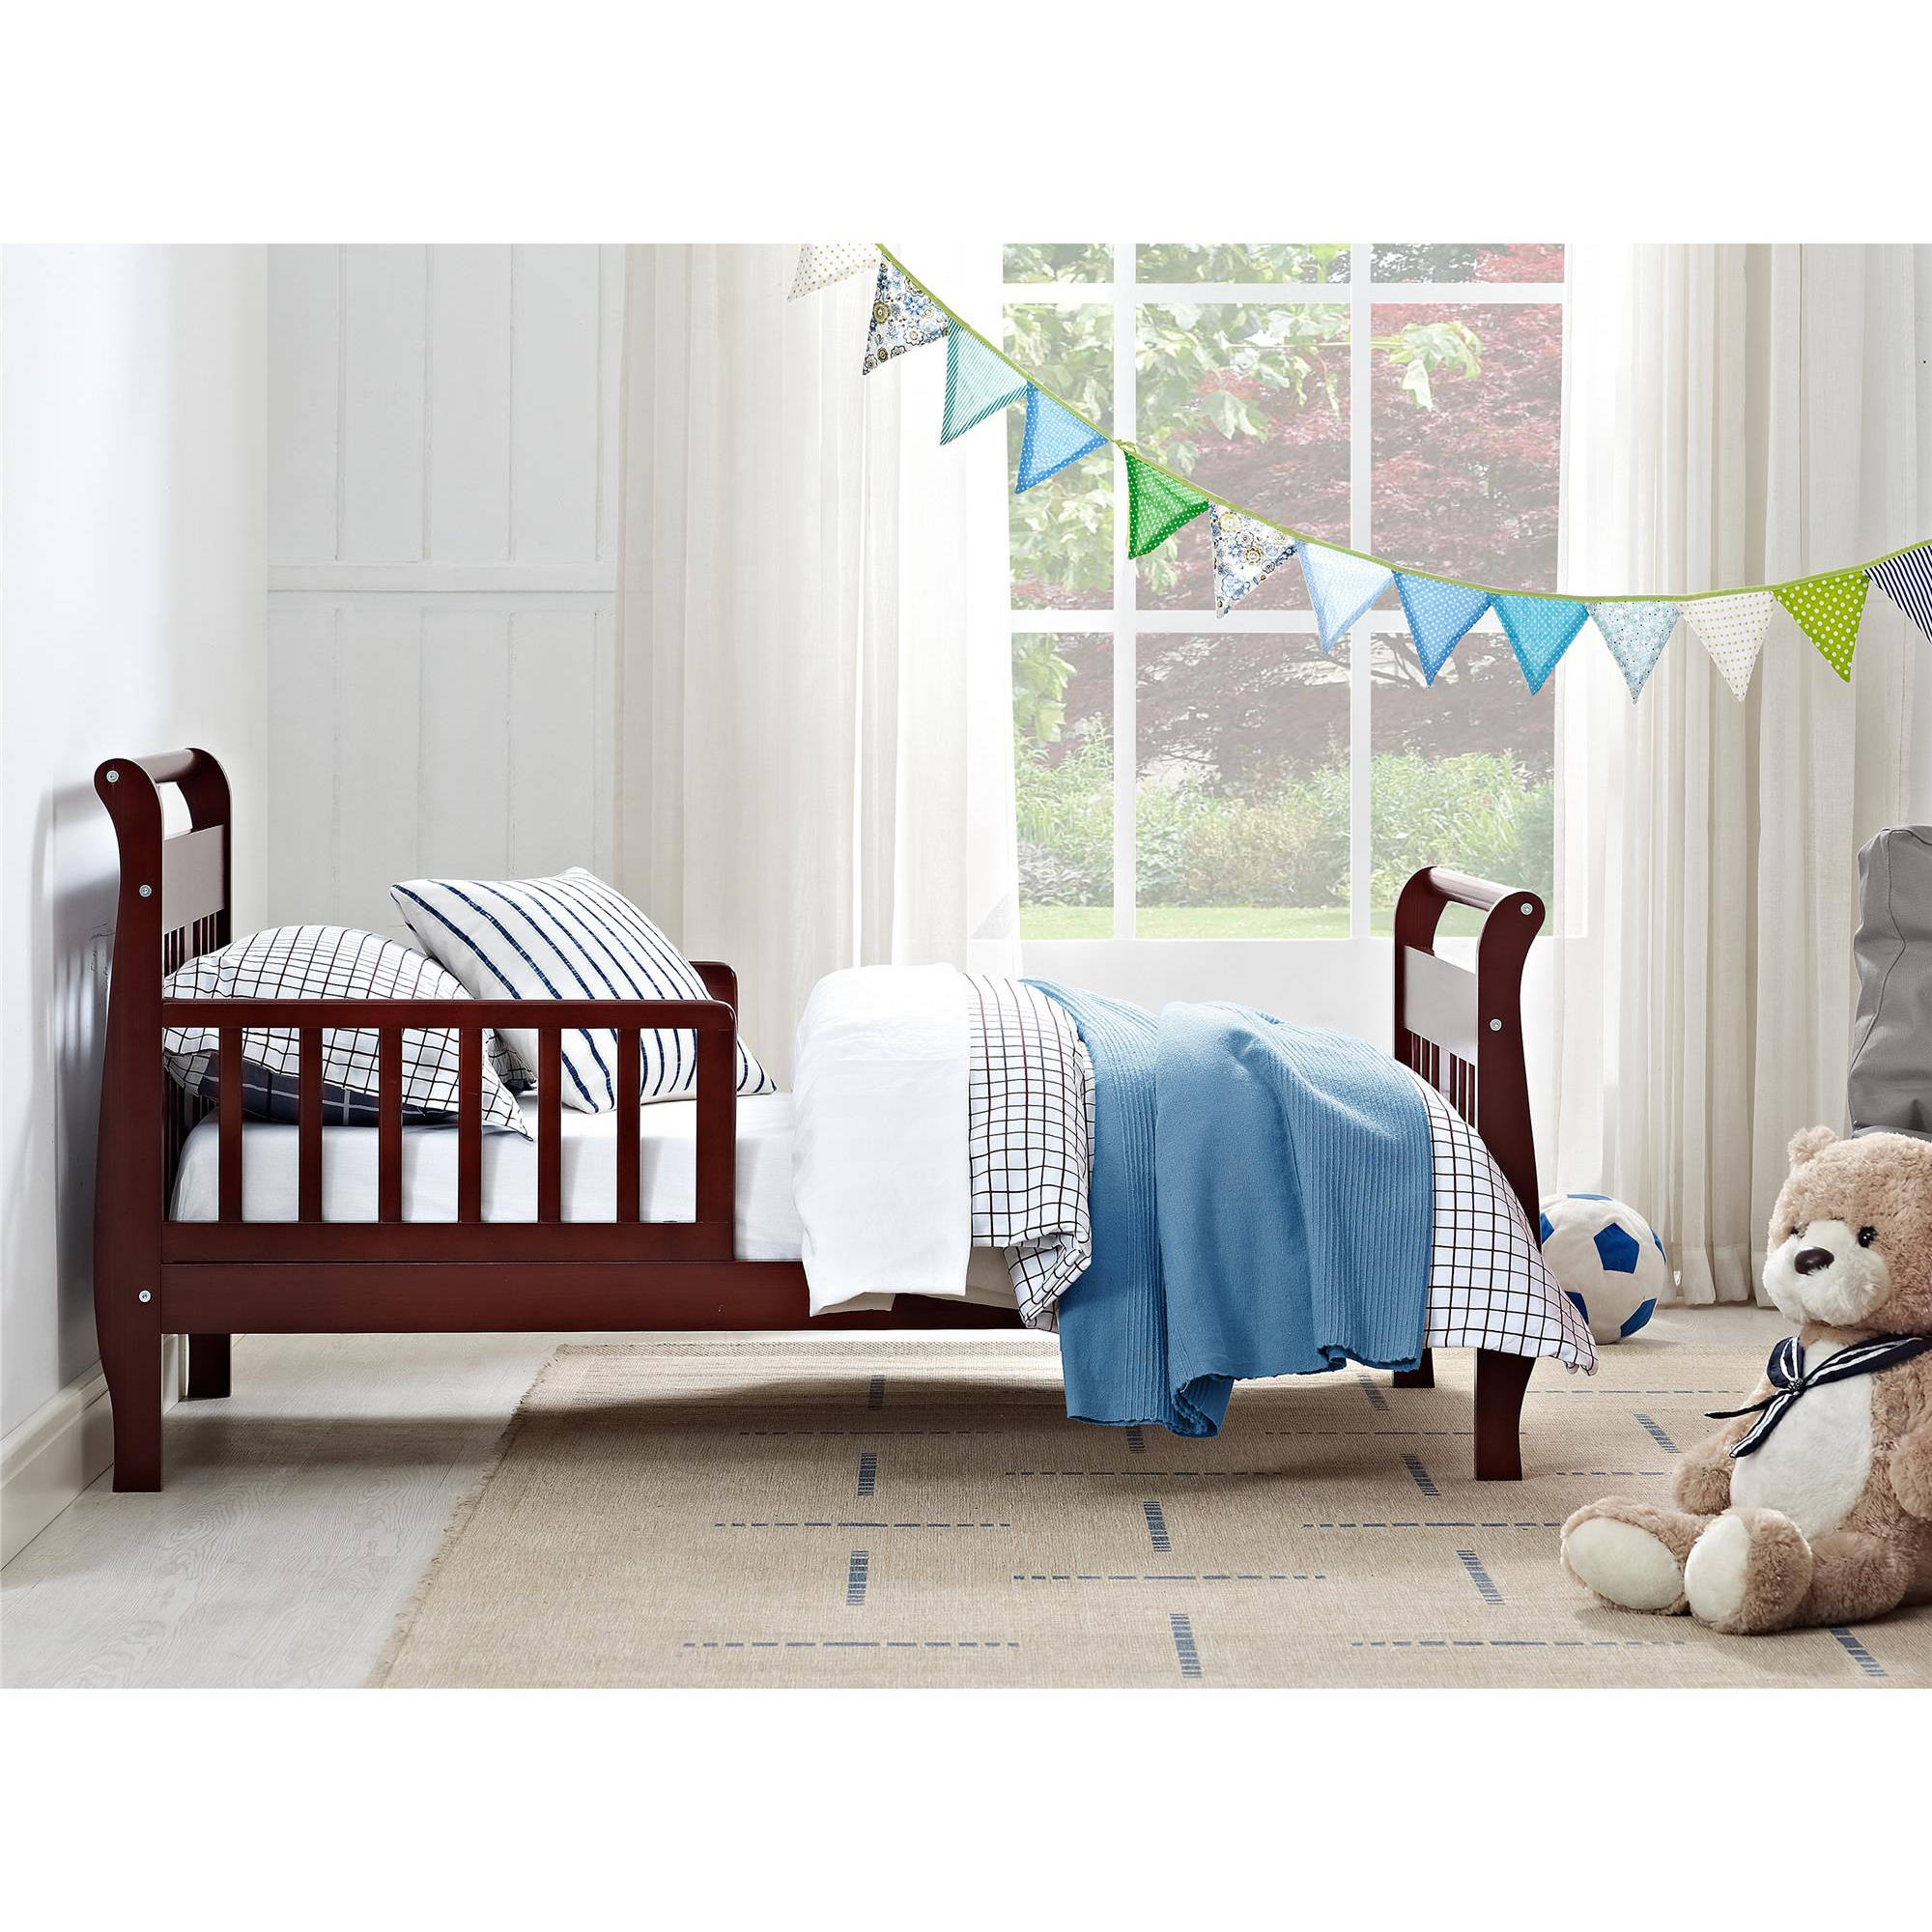 elegant how perfect nursery sweet themes part full floor crib of wood room hanging bedding changing toys with to cribs wardrobe tables ideas the affordable wall popular choose bed dresser baby blanket and size cherry